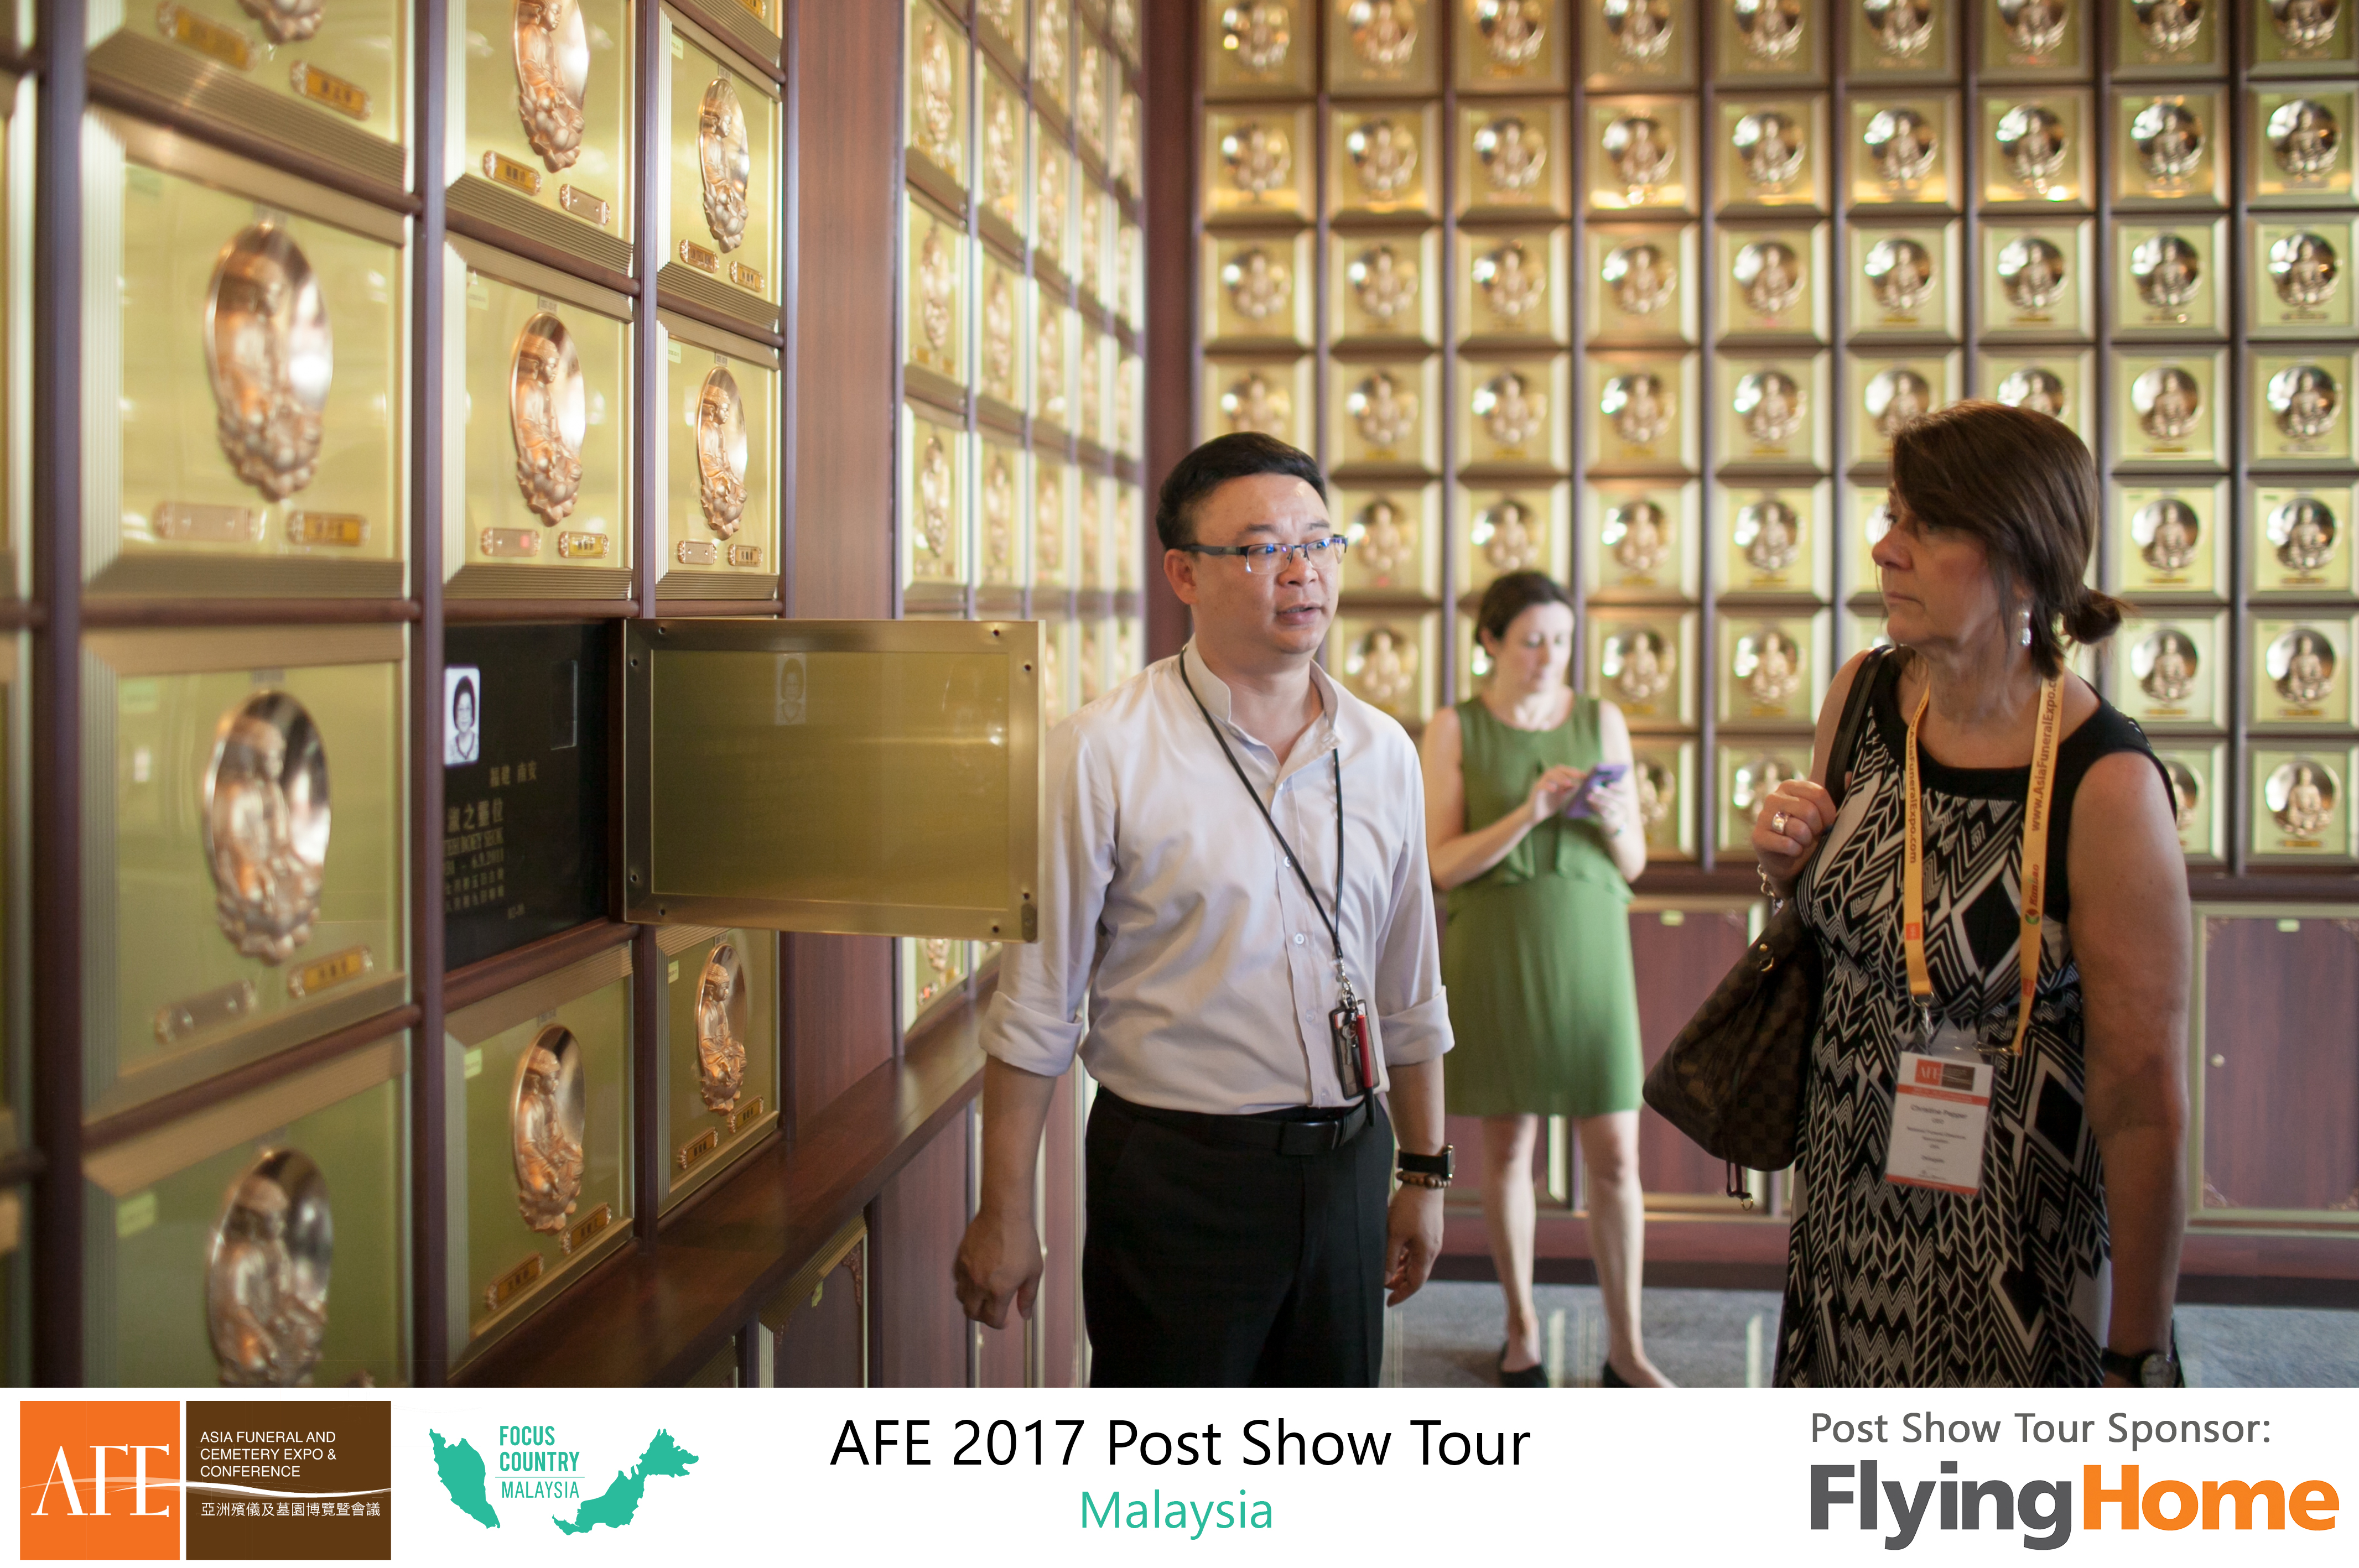 AFE Post Show Tour 2017 Day 3 -08